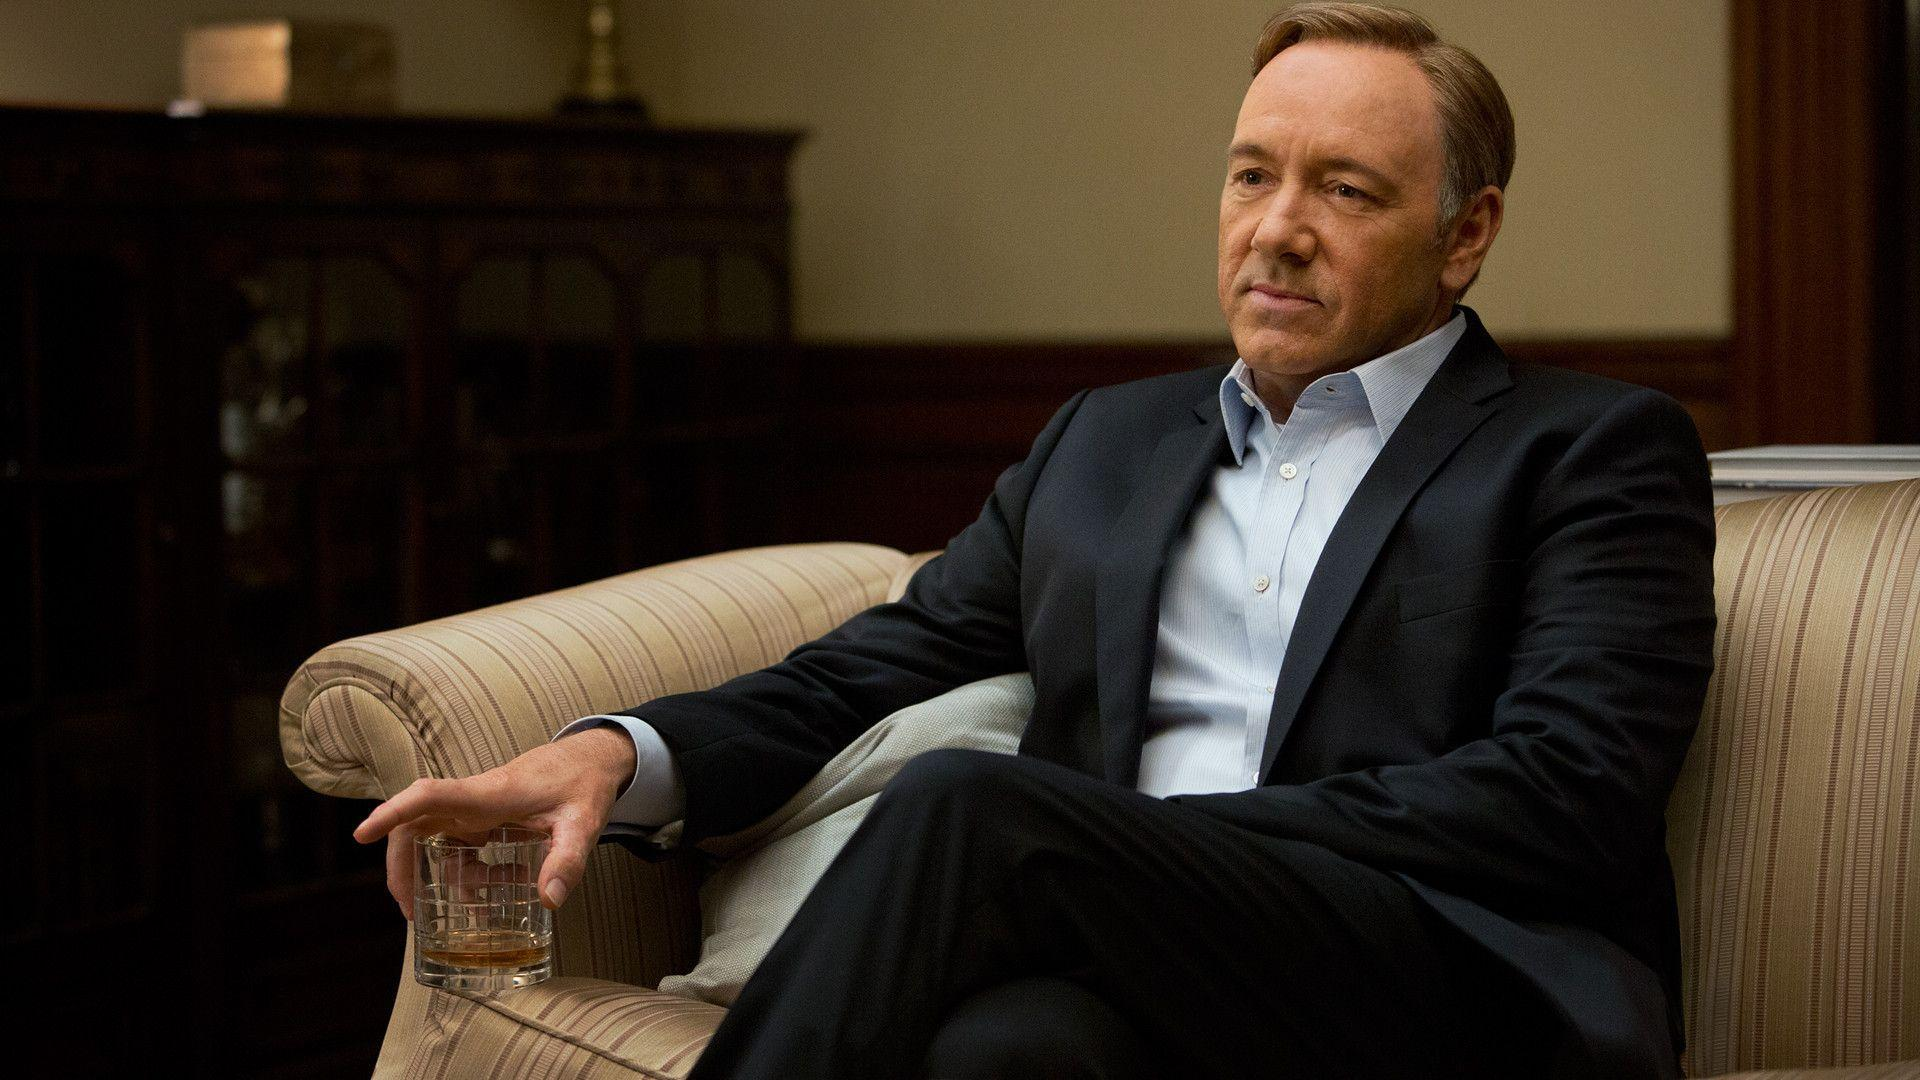 House of Cards wallpapers HD backgrounds download Facebook Covers